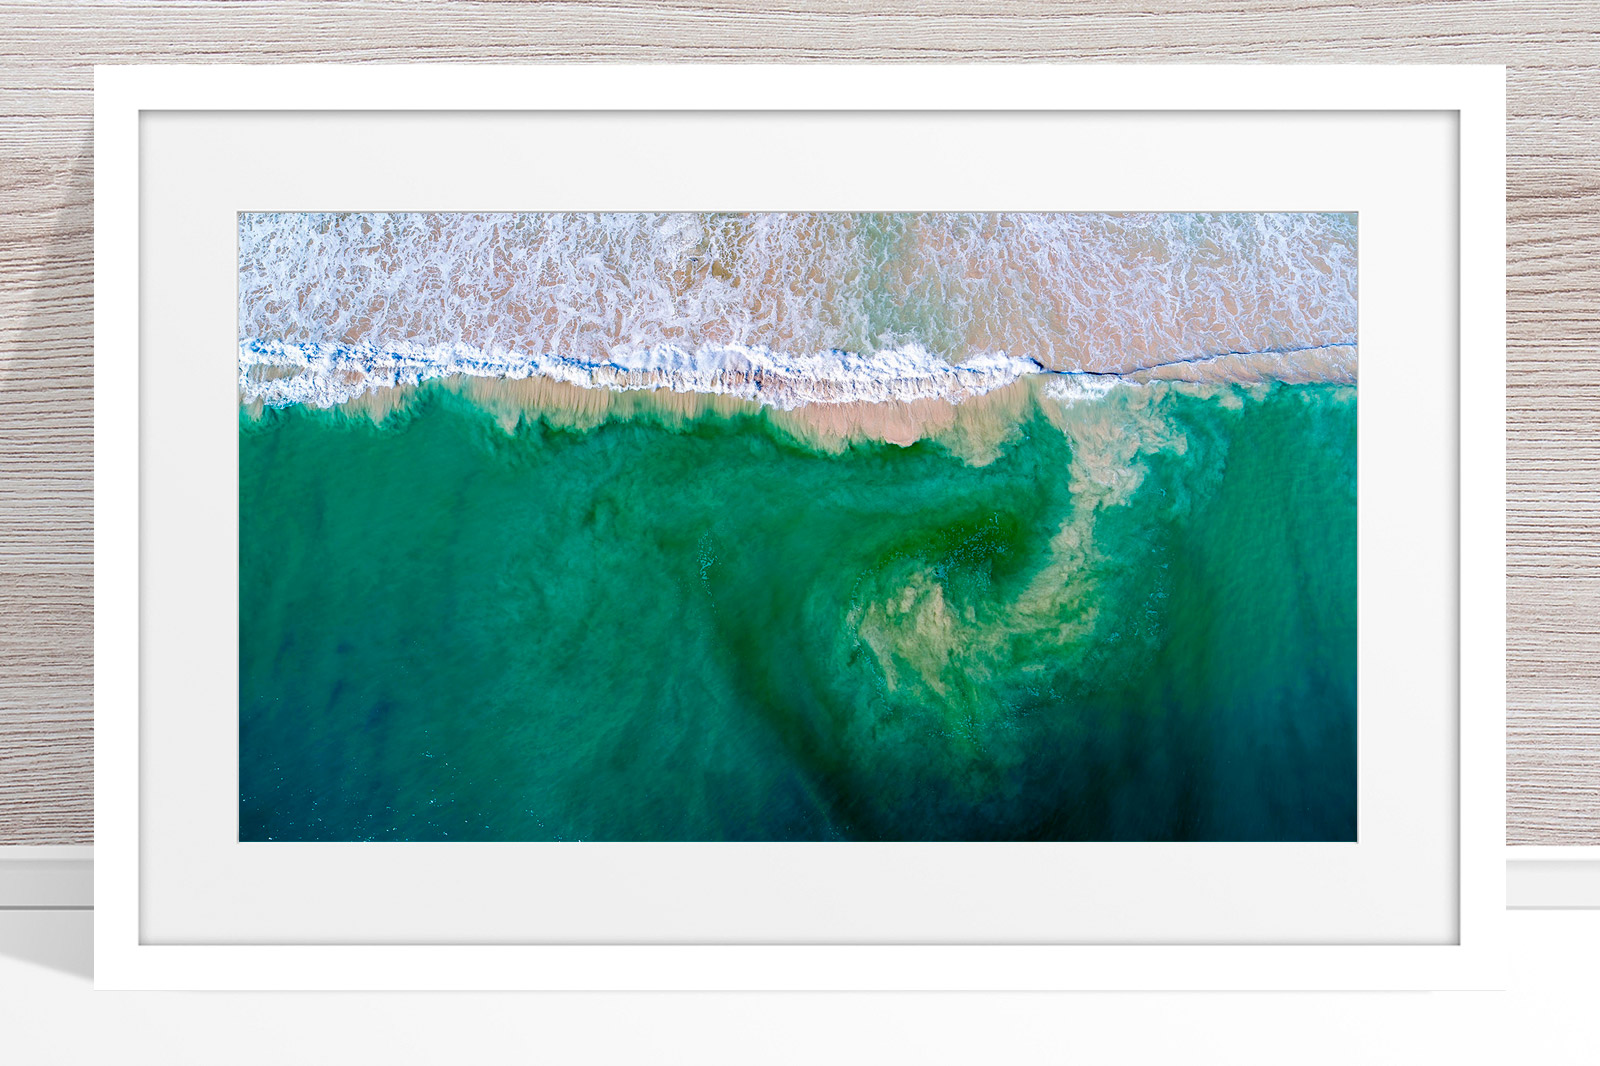 001 - Jason Mazur - 'South City Beach Aerial' White Frame